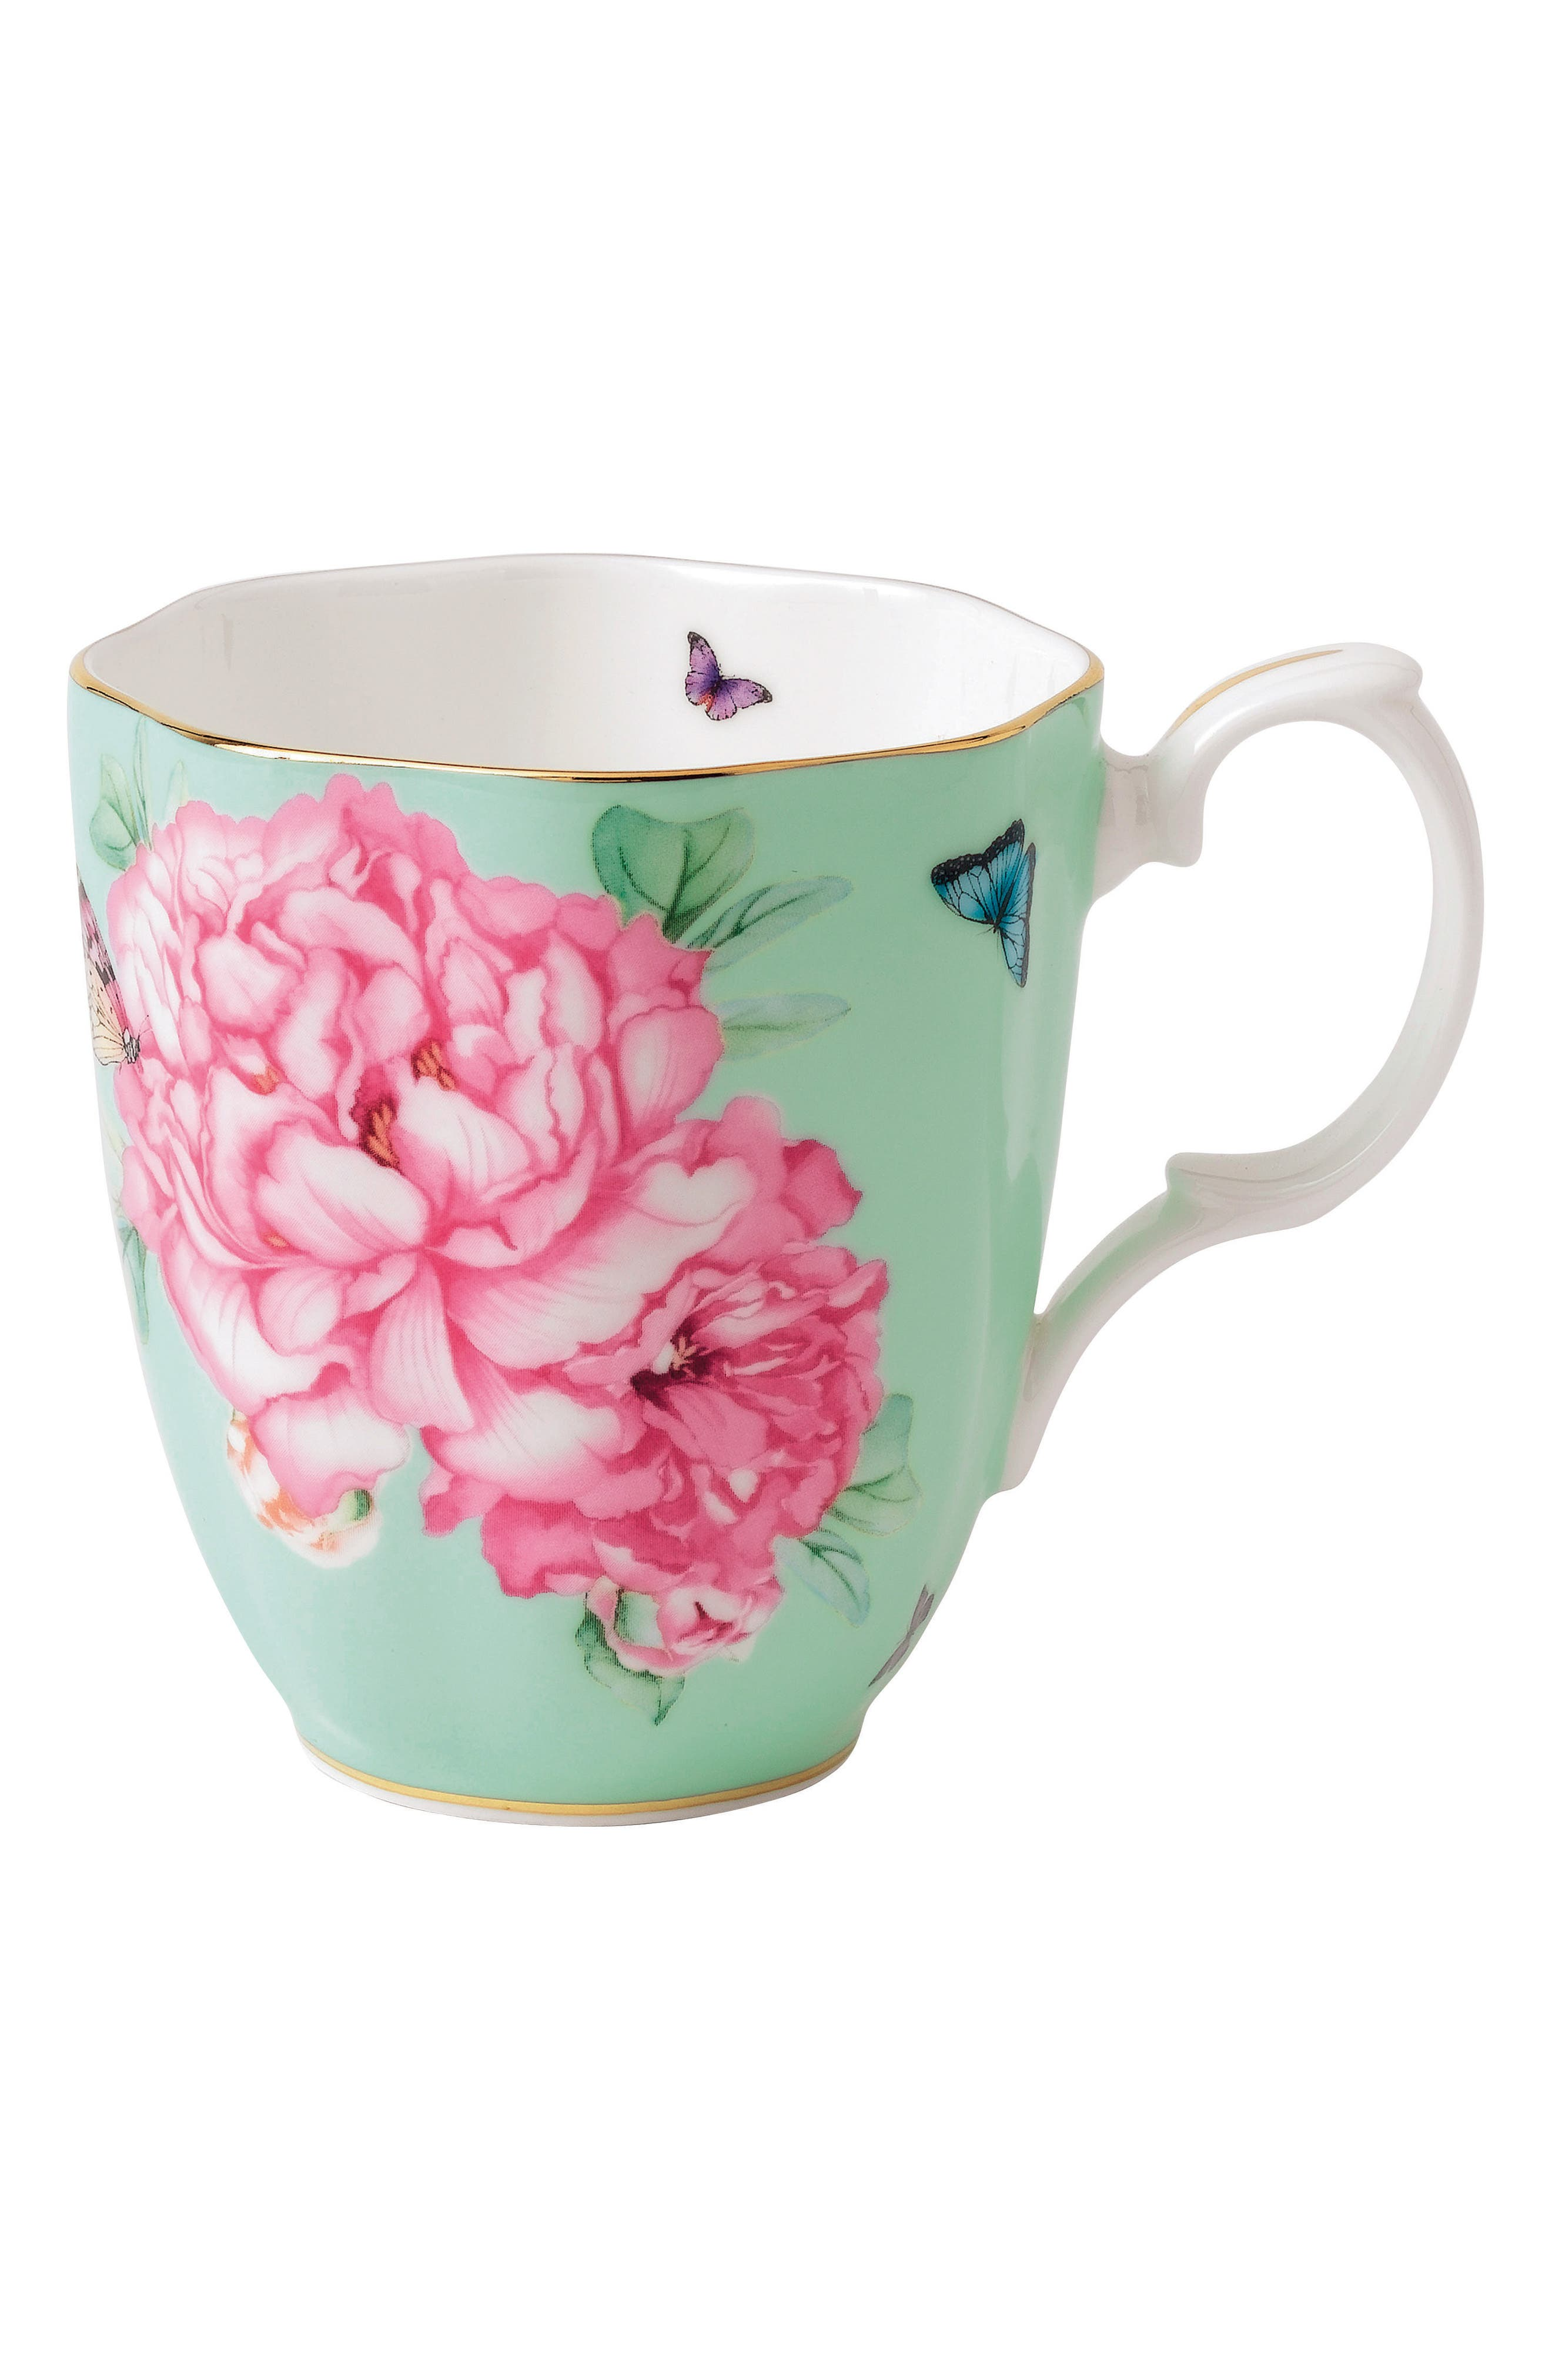 Alternate Image 1 Selected - Miranda Kerr for Royal Albert Friendship Vintage Mug